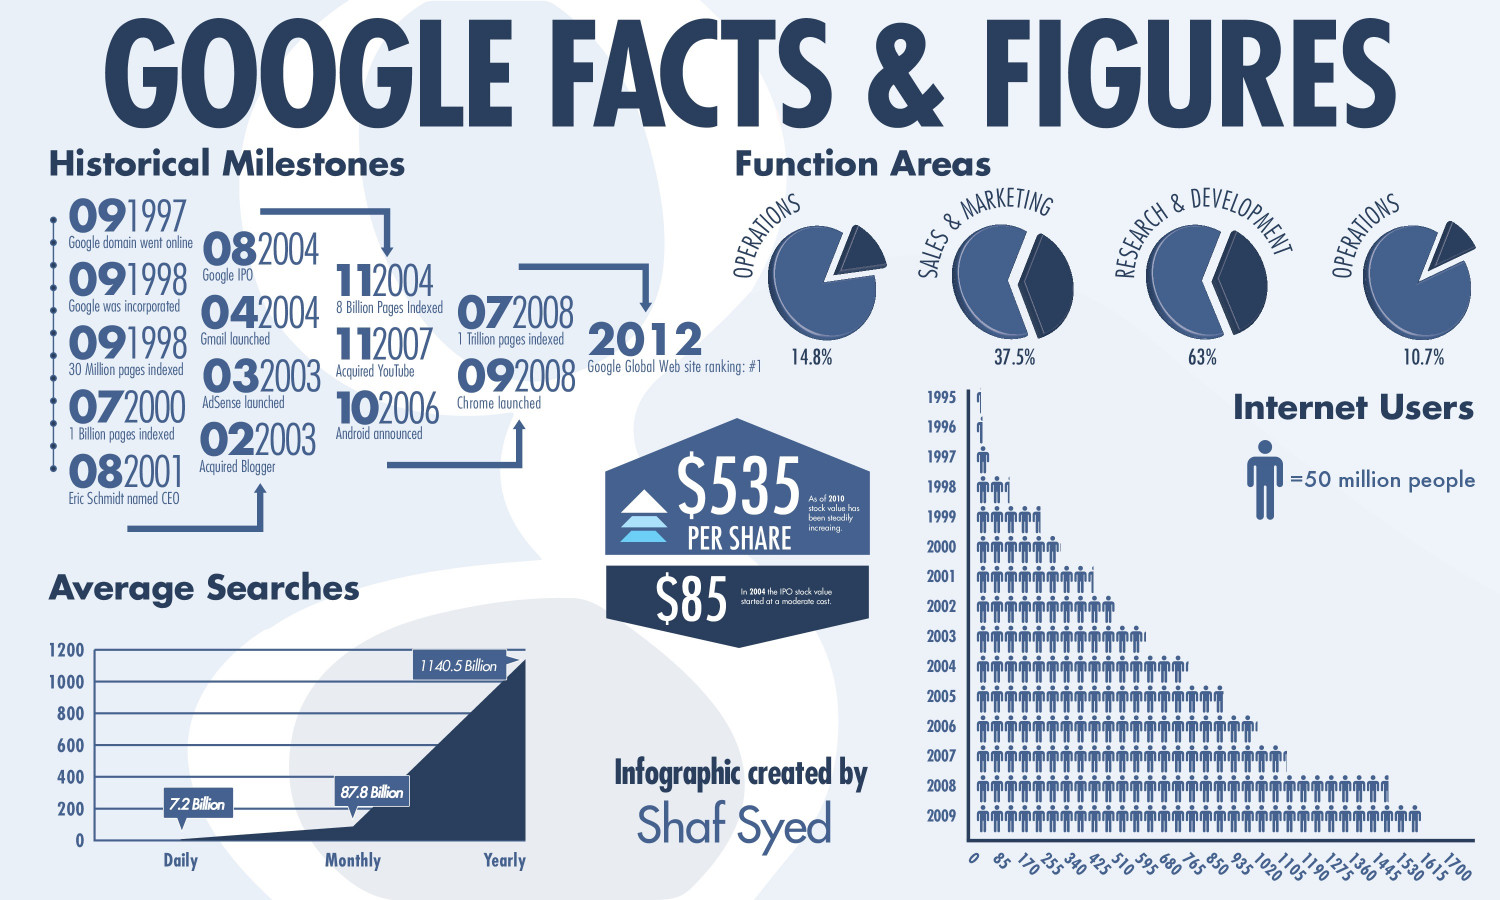 google facts and figures infographic